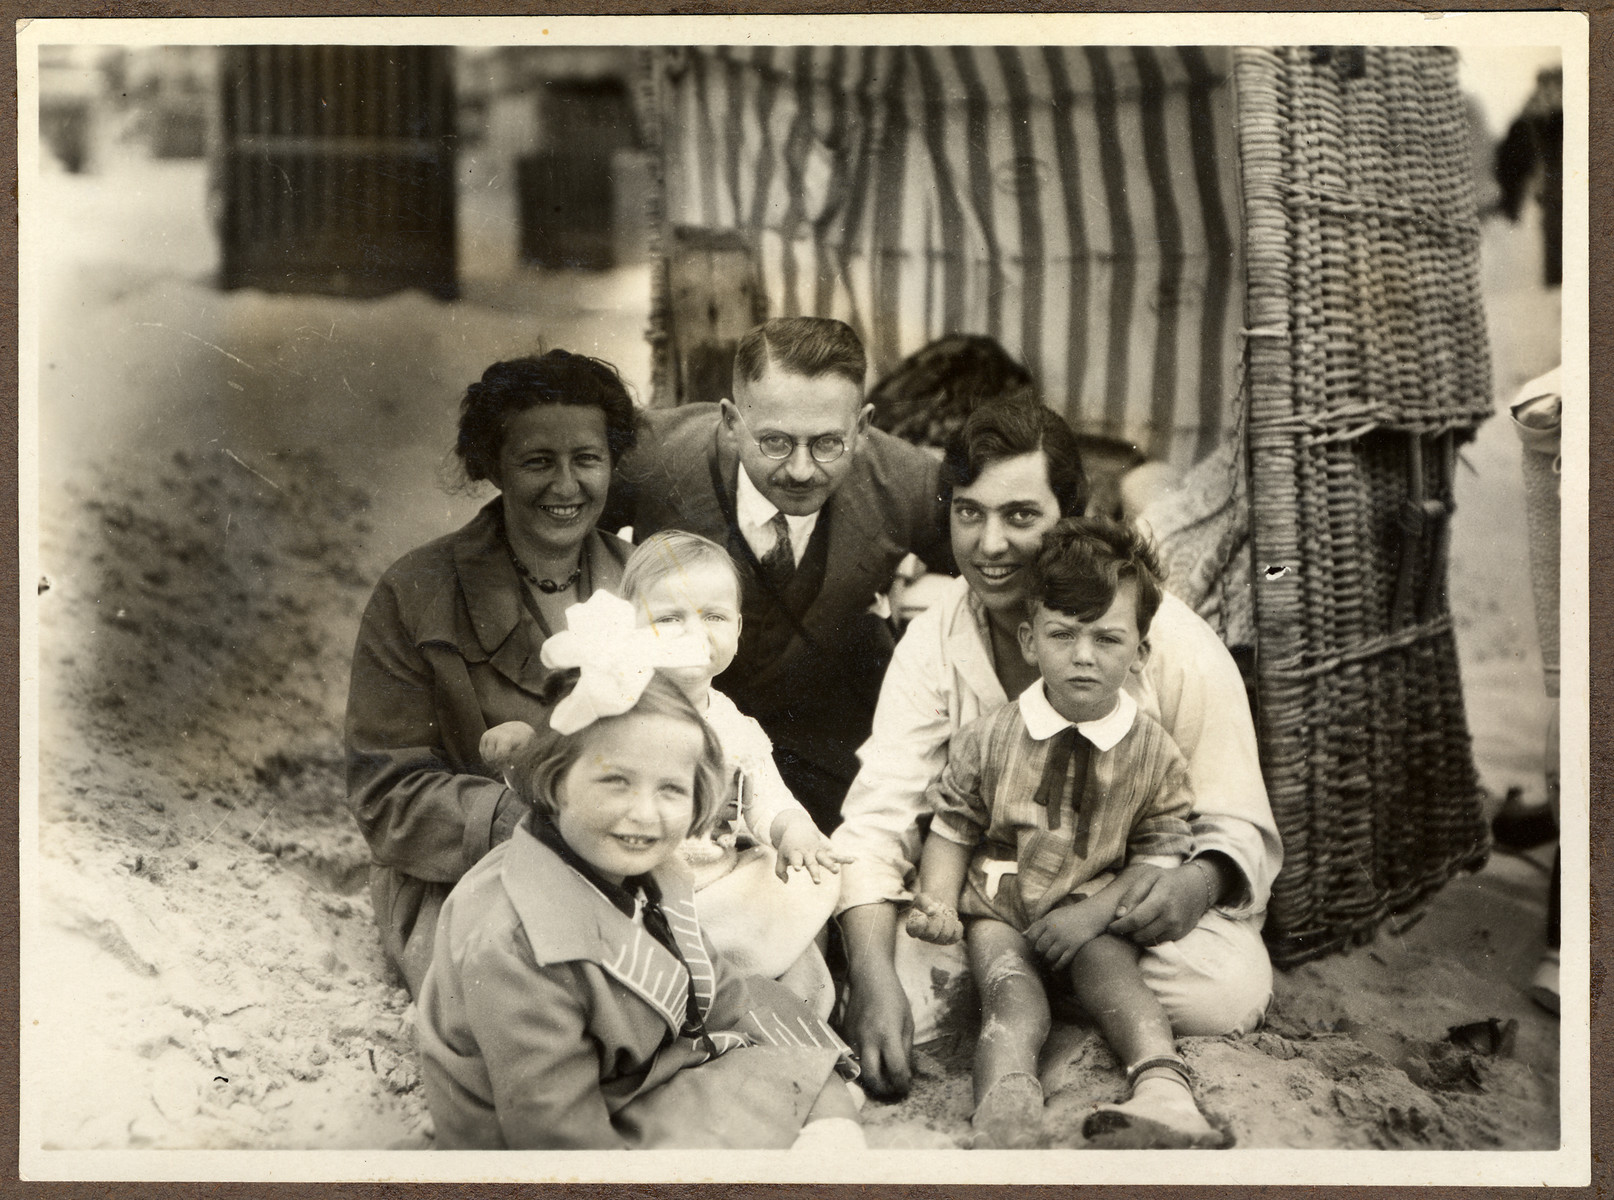 A German-Jewish family relaxes on the beach in front of a cabana.  Helga Bujakowski is seated in the front left.  Her mother Augusta is behind her.  Her father, Dr. Hans Adolf Bujakowski is in the center.  On the right are Rute Fiegel with her son Gerhard and daughter Ellen.